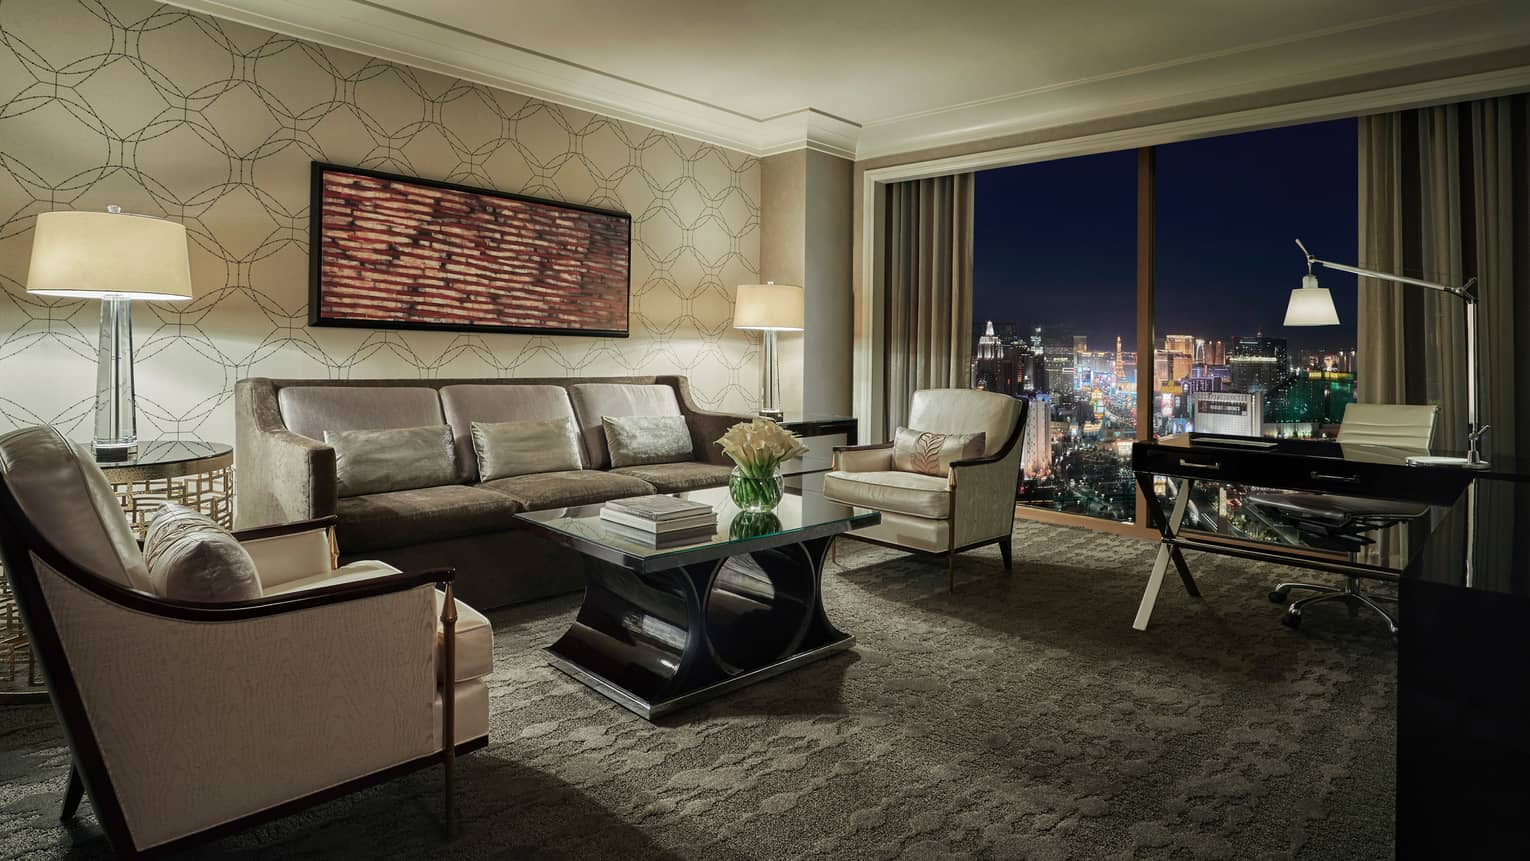 Strip-View Suite carpeted living room, desk by window overlooking Las Vegas strip lights